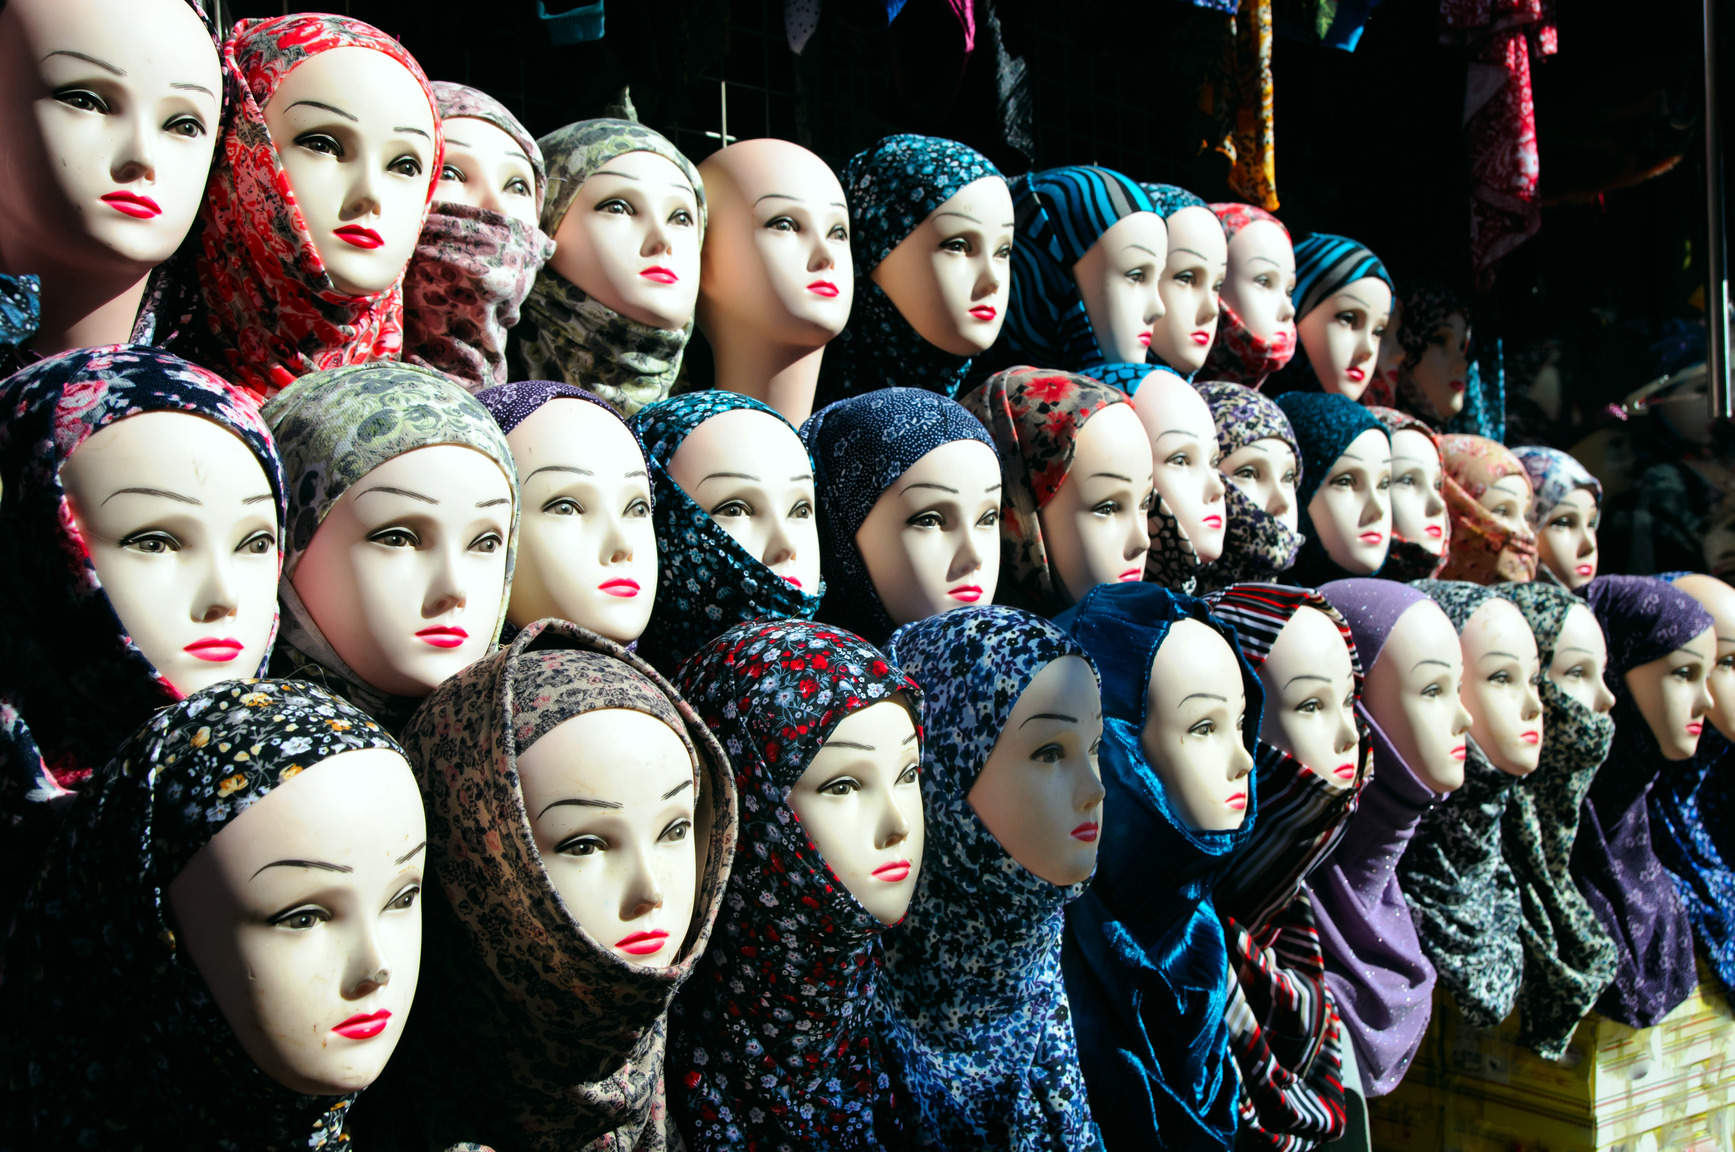 Closeup of mannequin heads in hijab.  Photo credit:  Photodune.